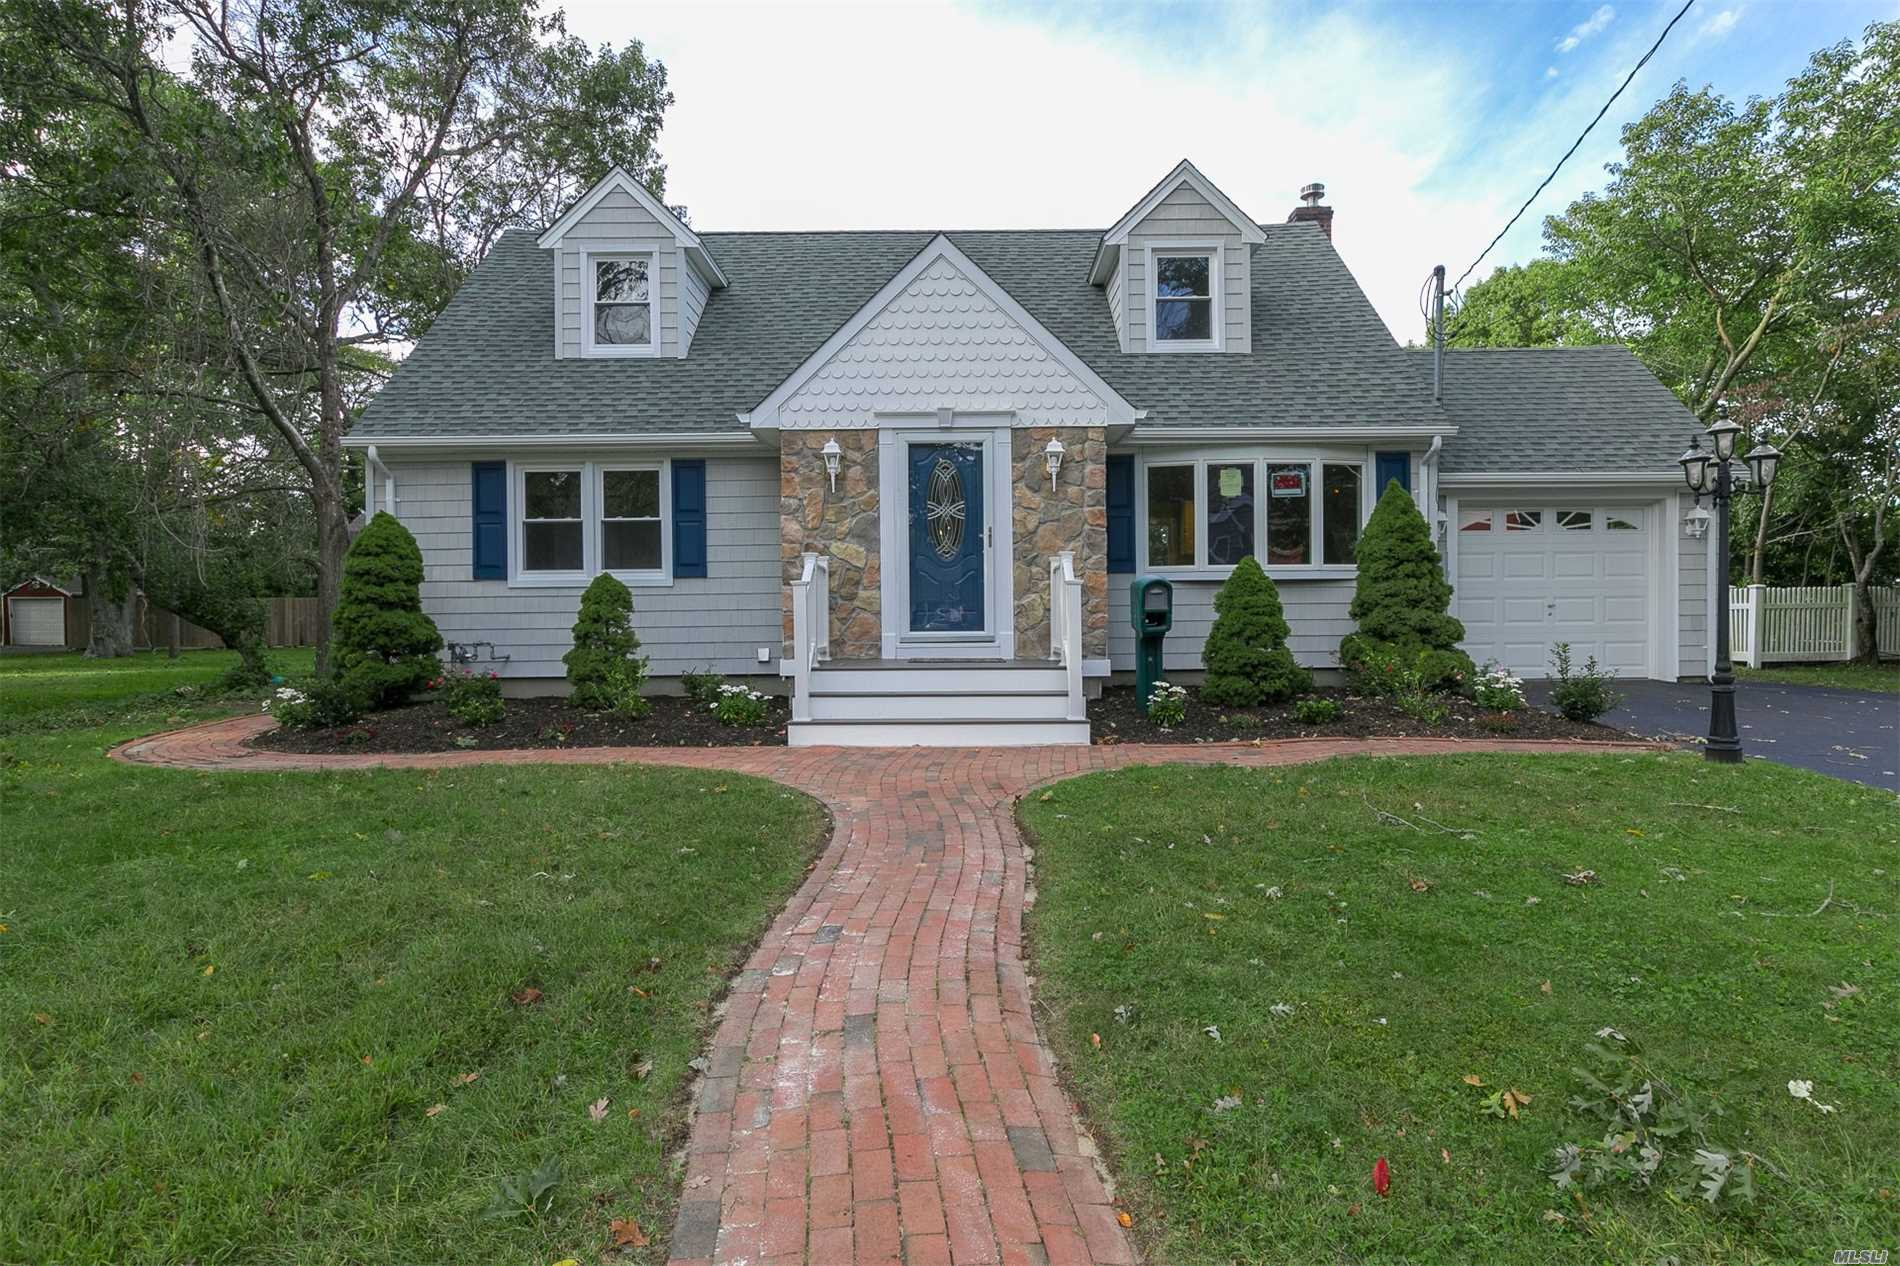 Gorgeous Exp. Cape, Totally Renovated, New Kitchen, Classic Antique White Cabinetry, Granite Counter Tops, Tumbled Marble Back Splash, Ss Appliances, Center Island, Hardwood Floors, Recessed Lighting Throughout, Great Rm, Sunken Lr W/Fp, 2 Full Baths, Carrara Marble Over Sized Vanity, Subway Tile W/Mosaic Marble & Glass Porcelain Tile. Trim & Moldings Throughout, New Windows, New Heating & Central Air, New Decking & Front Porch. 1/3 Acre Professionally Landscaped. Too Much To List!!